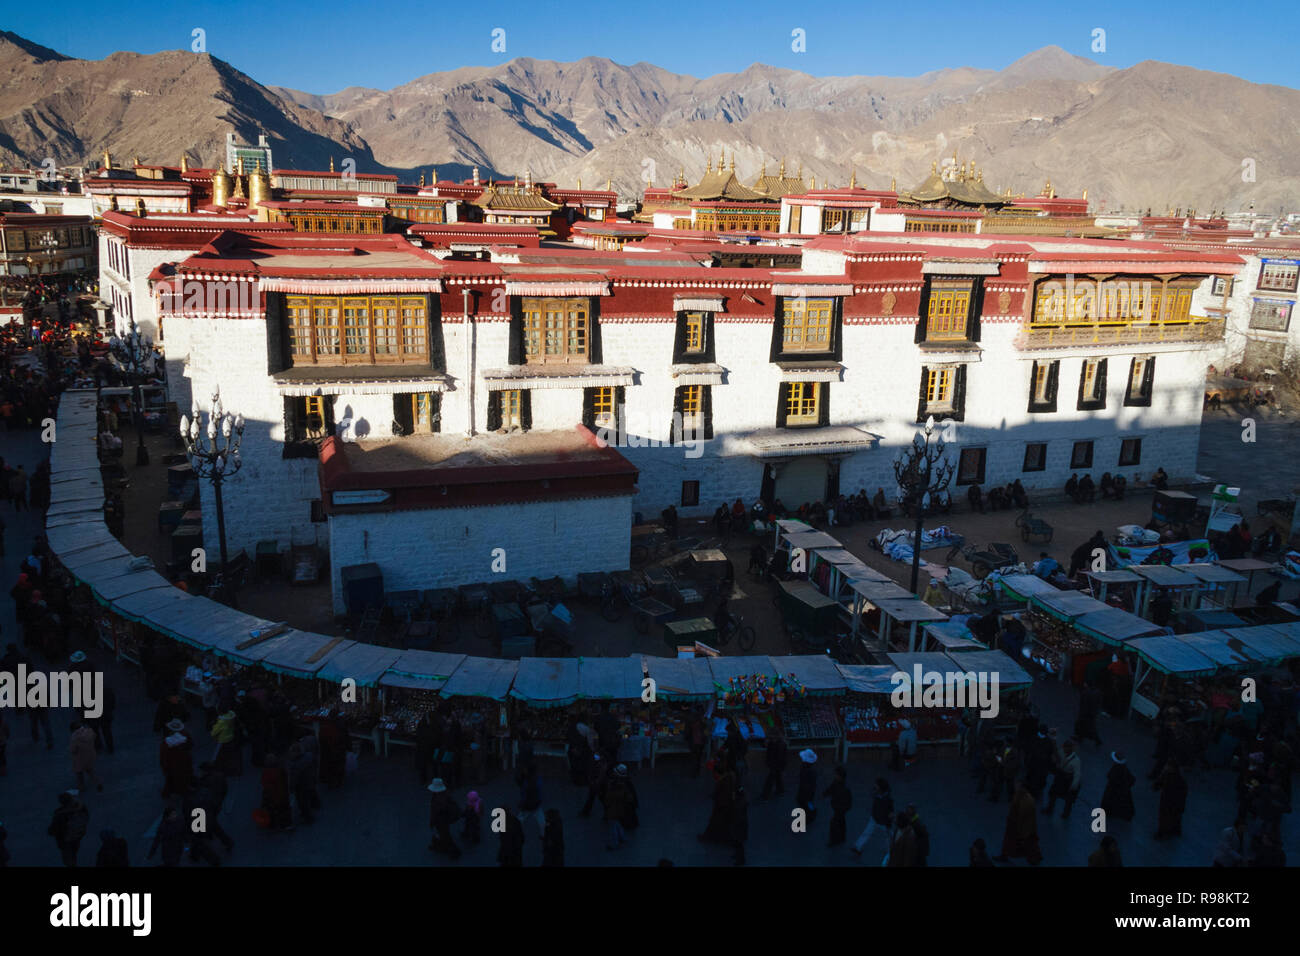 Lhasa, Tibet Autonomous Region, China : High angle view of Tibetan Buddhist pilgrims walking around the Jokhang temple in Barkhor Square. The Jokhang  - Stock Image